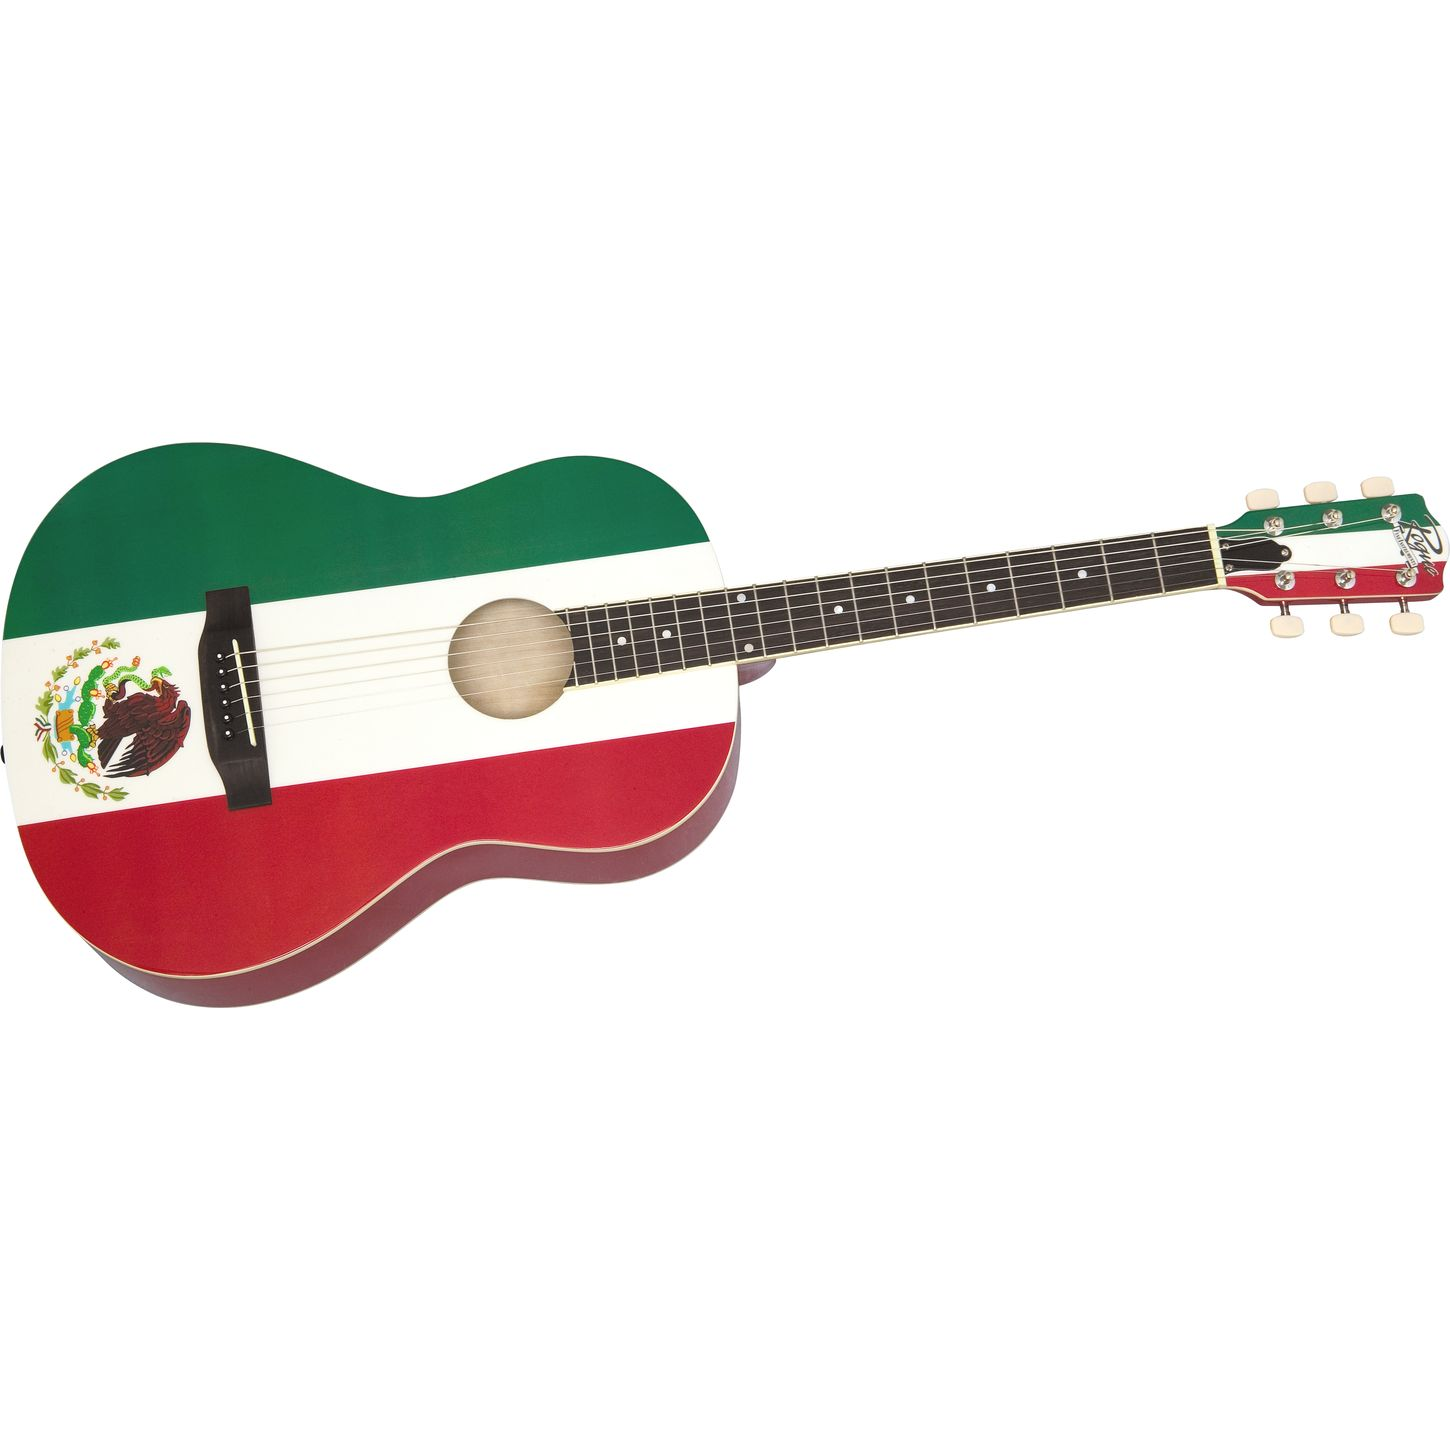 Spanish clipart mexican guitar Instrument Clipart Mexican Drum musical